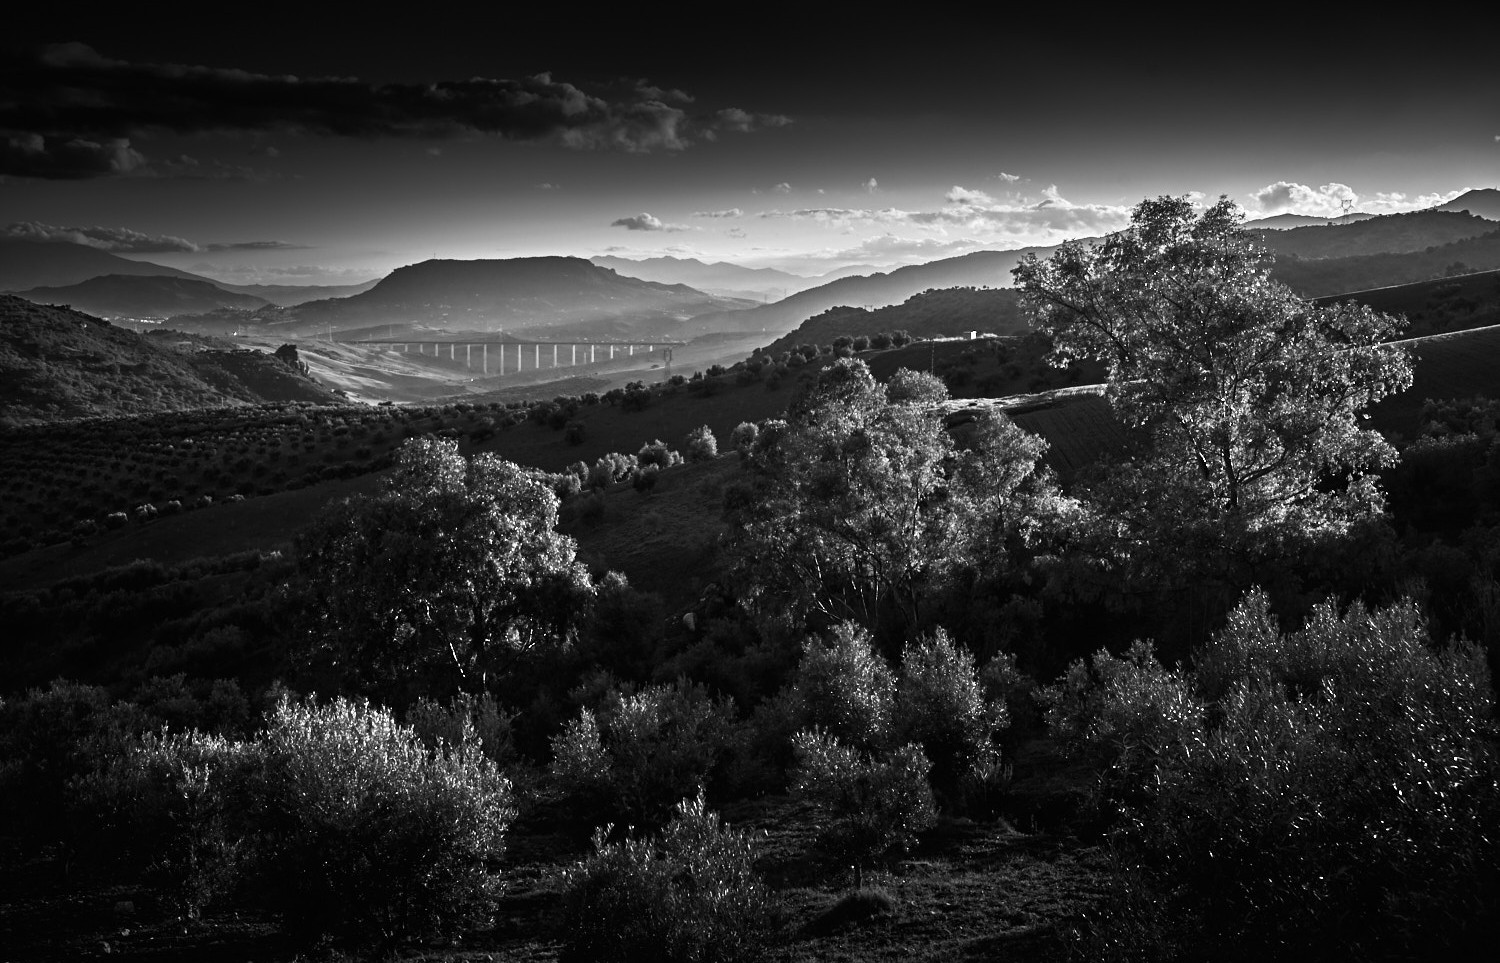 andalucia-black-white-spain-landscape-projects-copyright-haegele-photography-photographer-germany-deutschland-fotograf